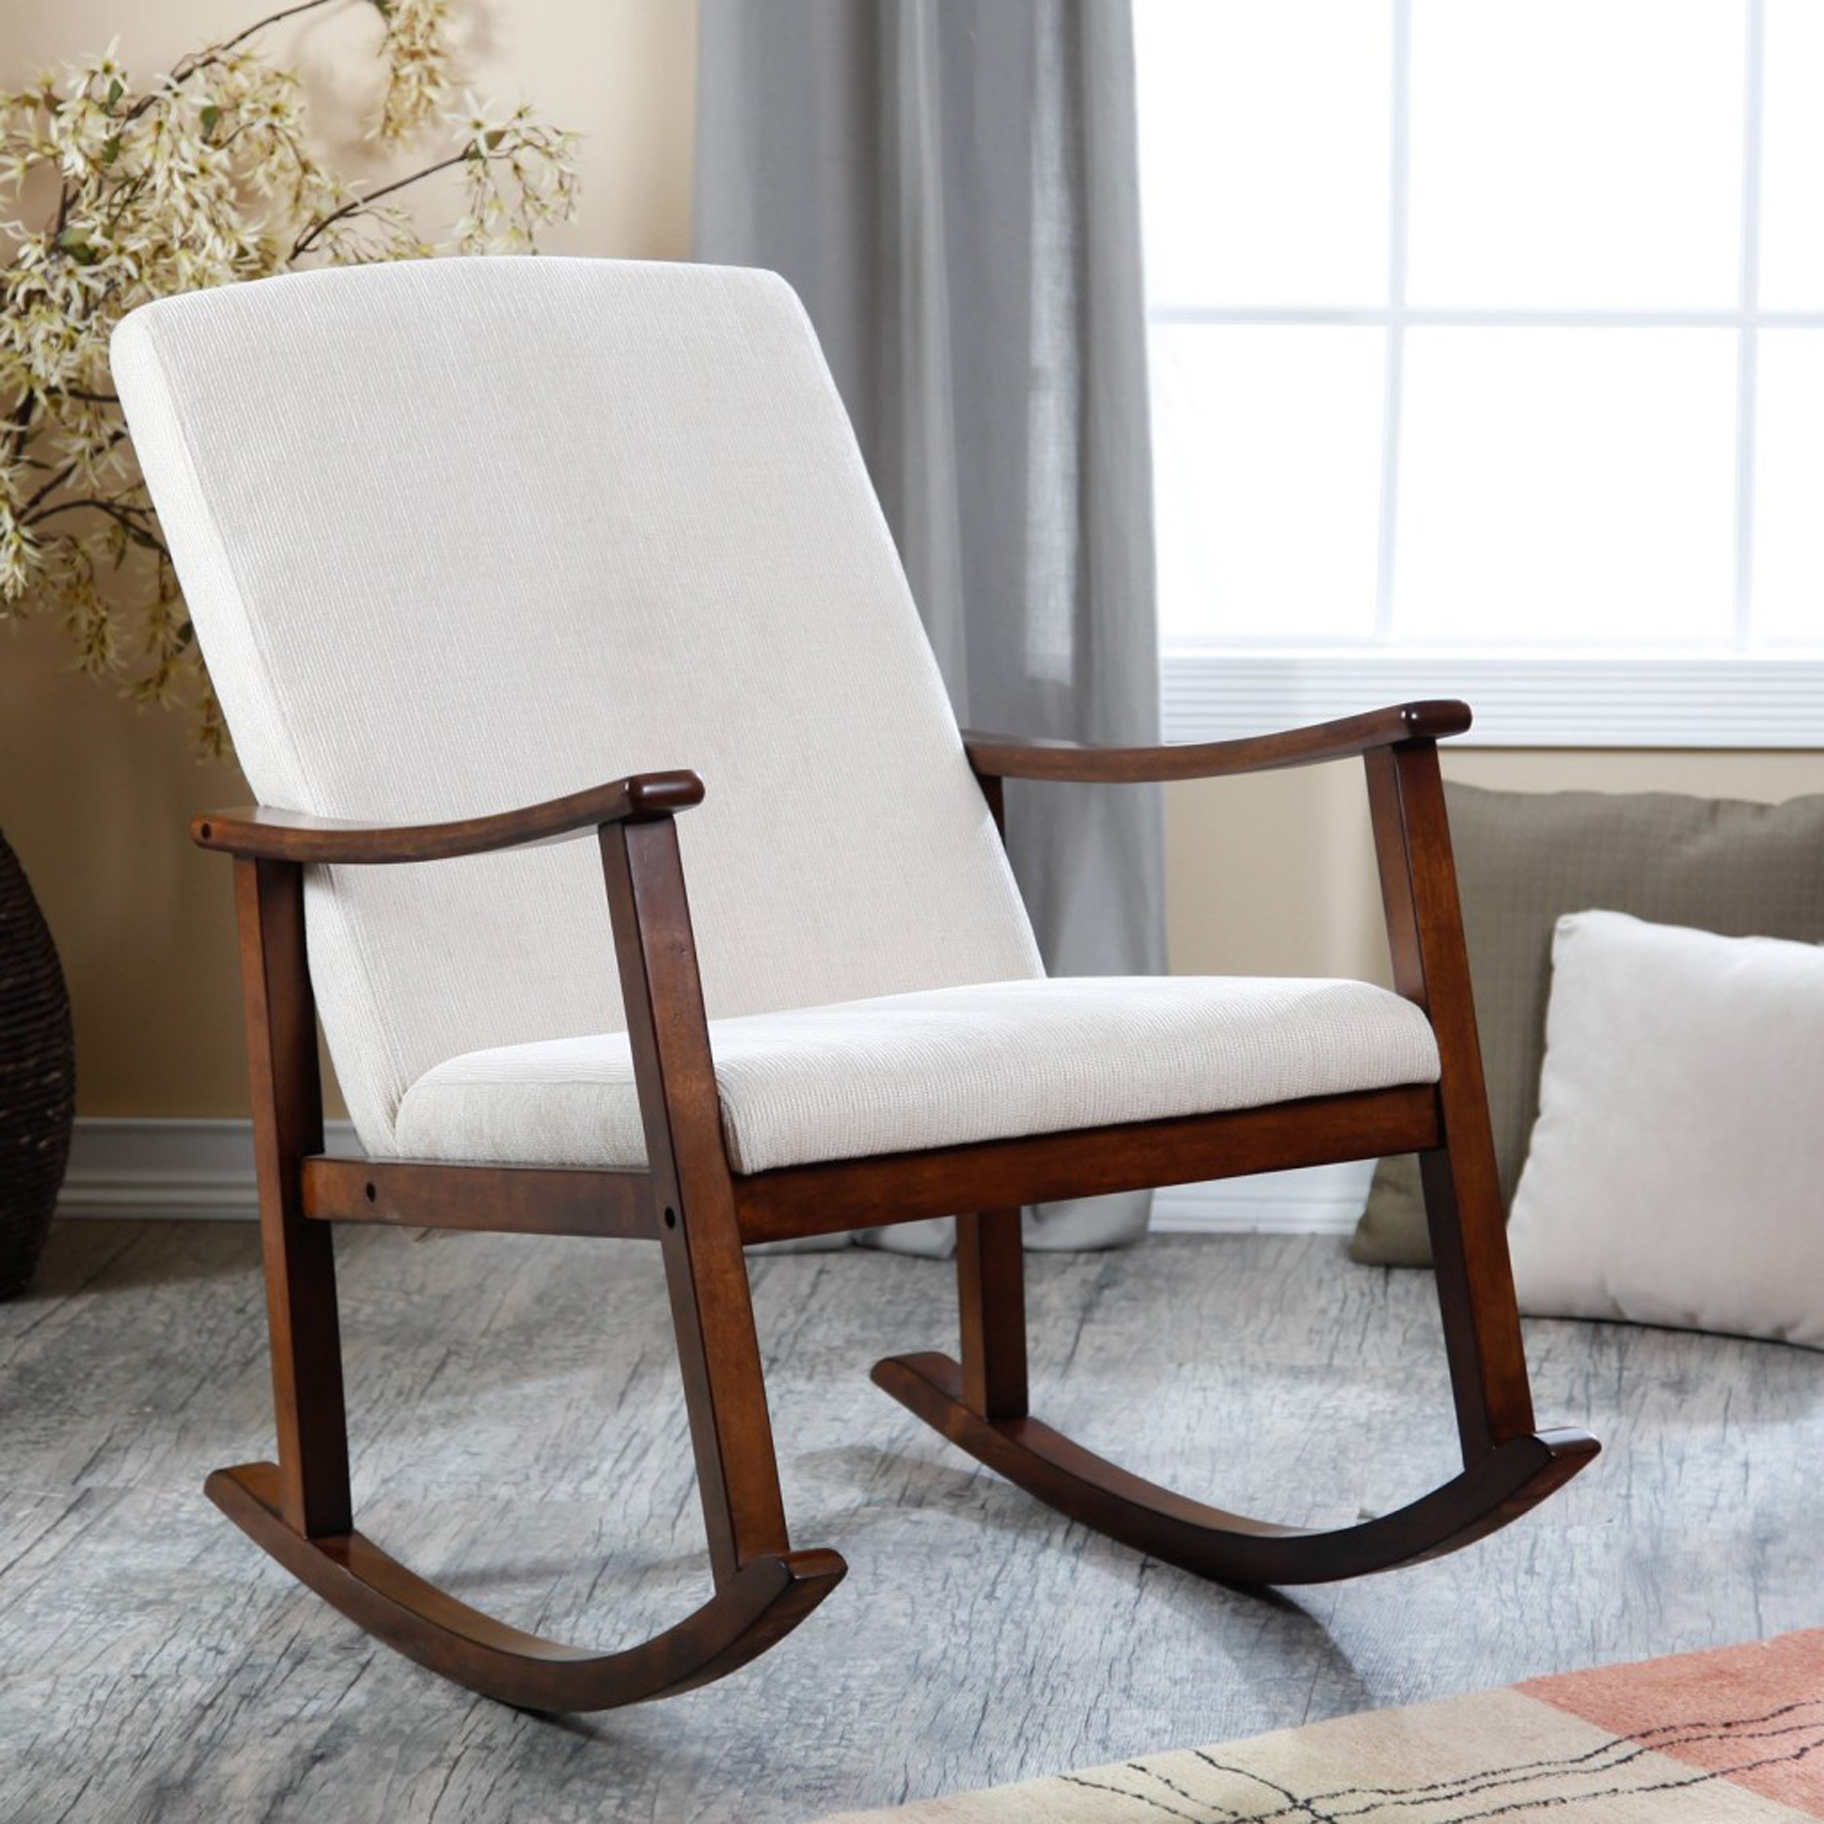 Rocking Chair Cushion | Rocking Chair Cusions | Rocking Chair Arm Cushions